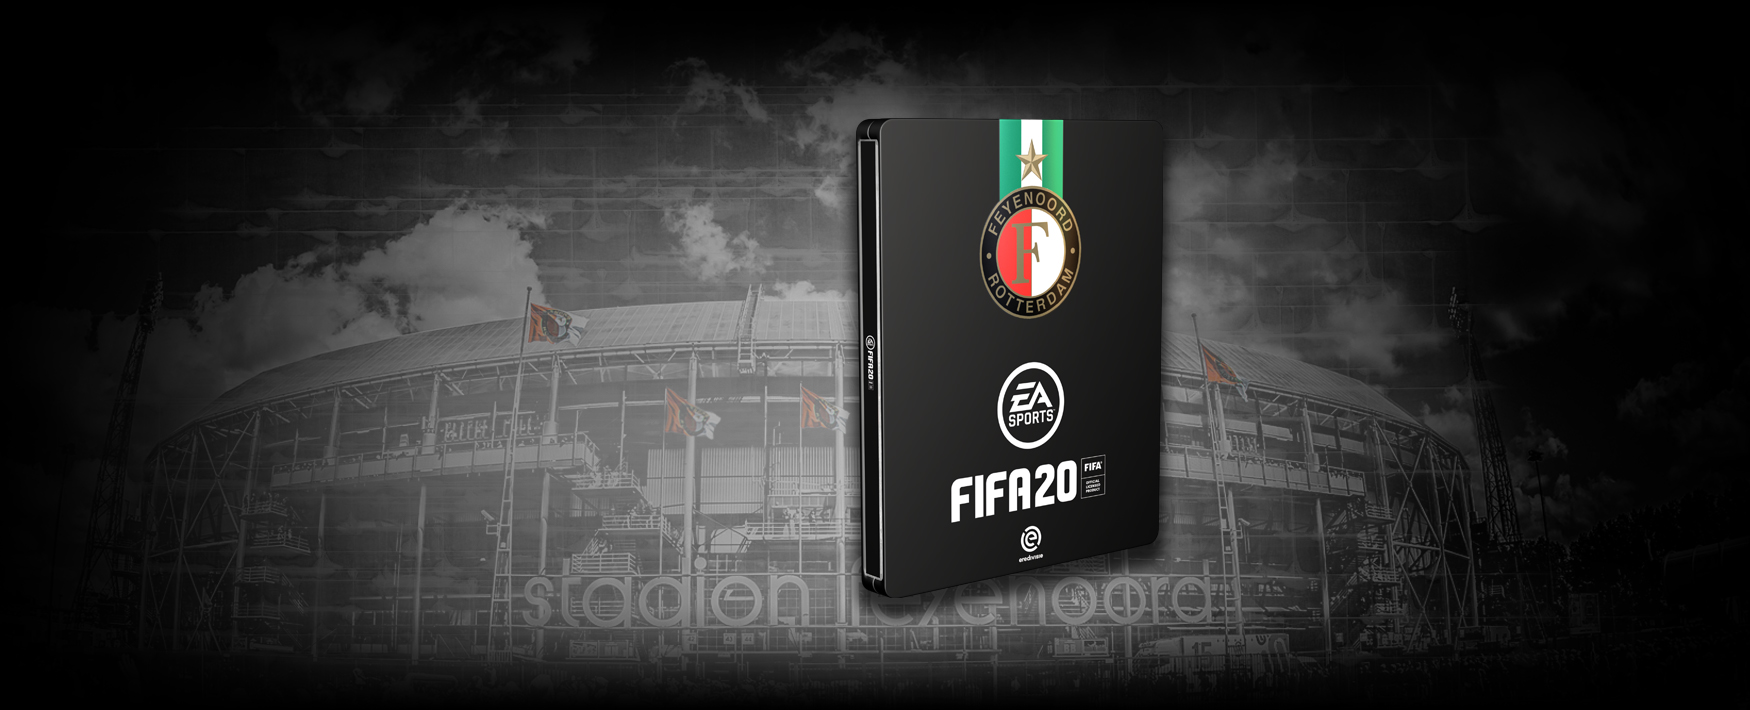 NOW AVAILABLE: FIFA 20!